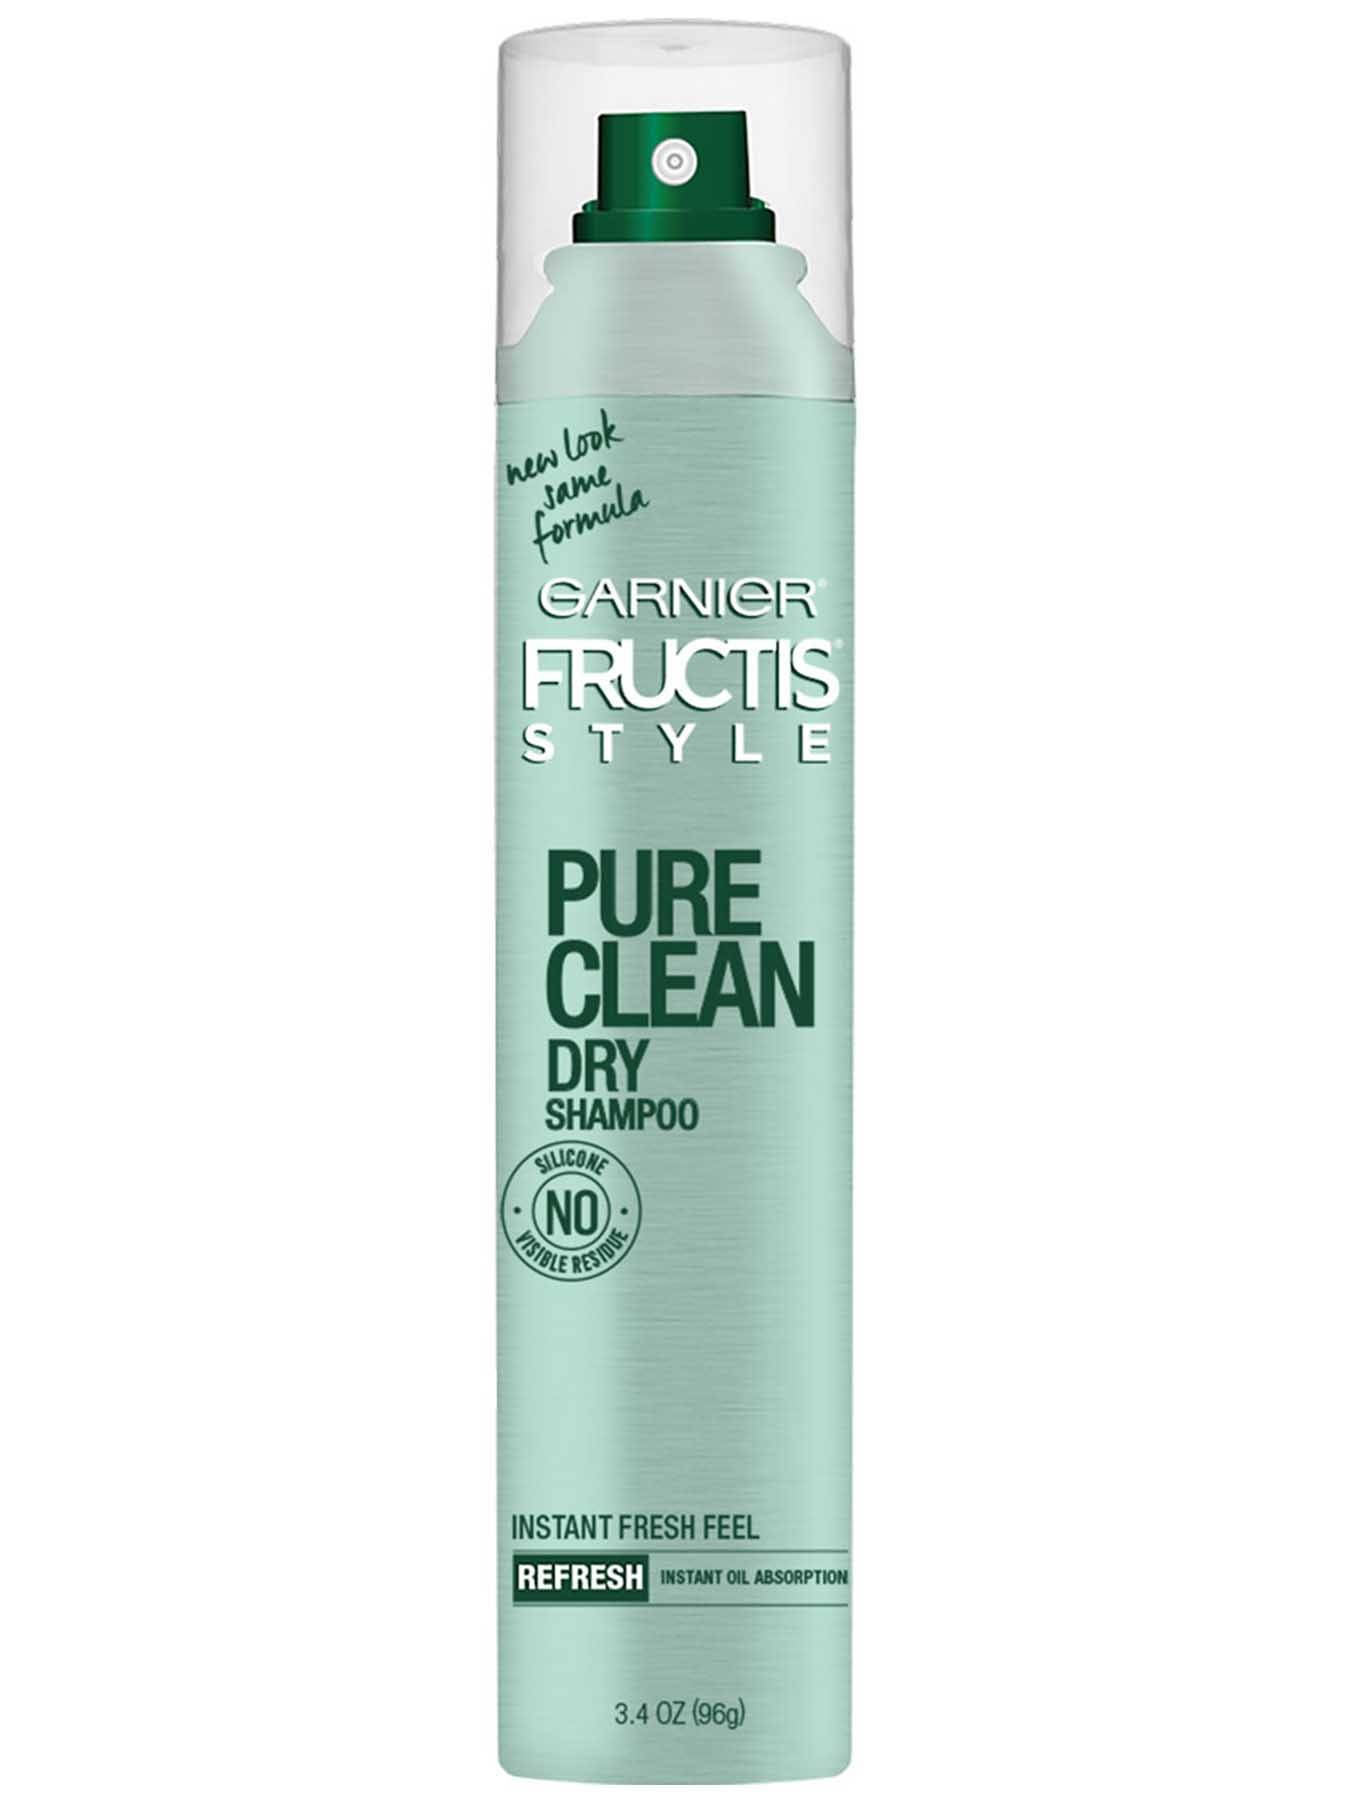 Front view of Pure Clean Dry Shampoo.